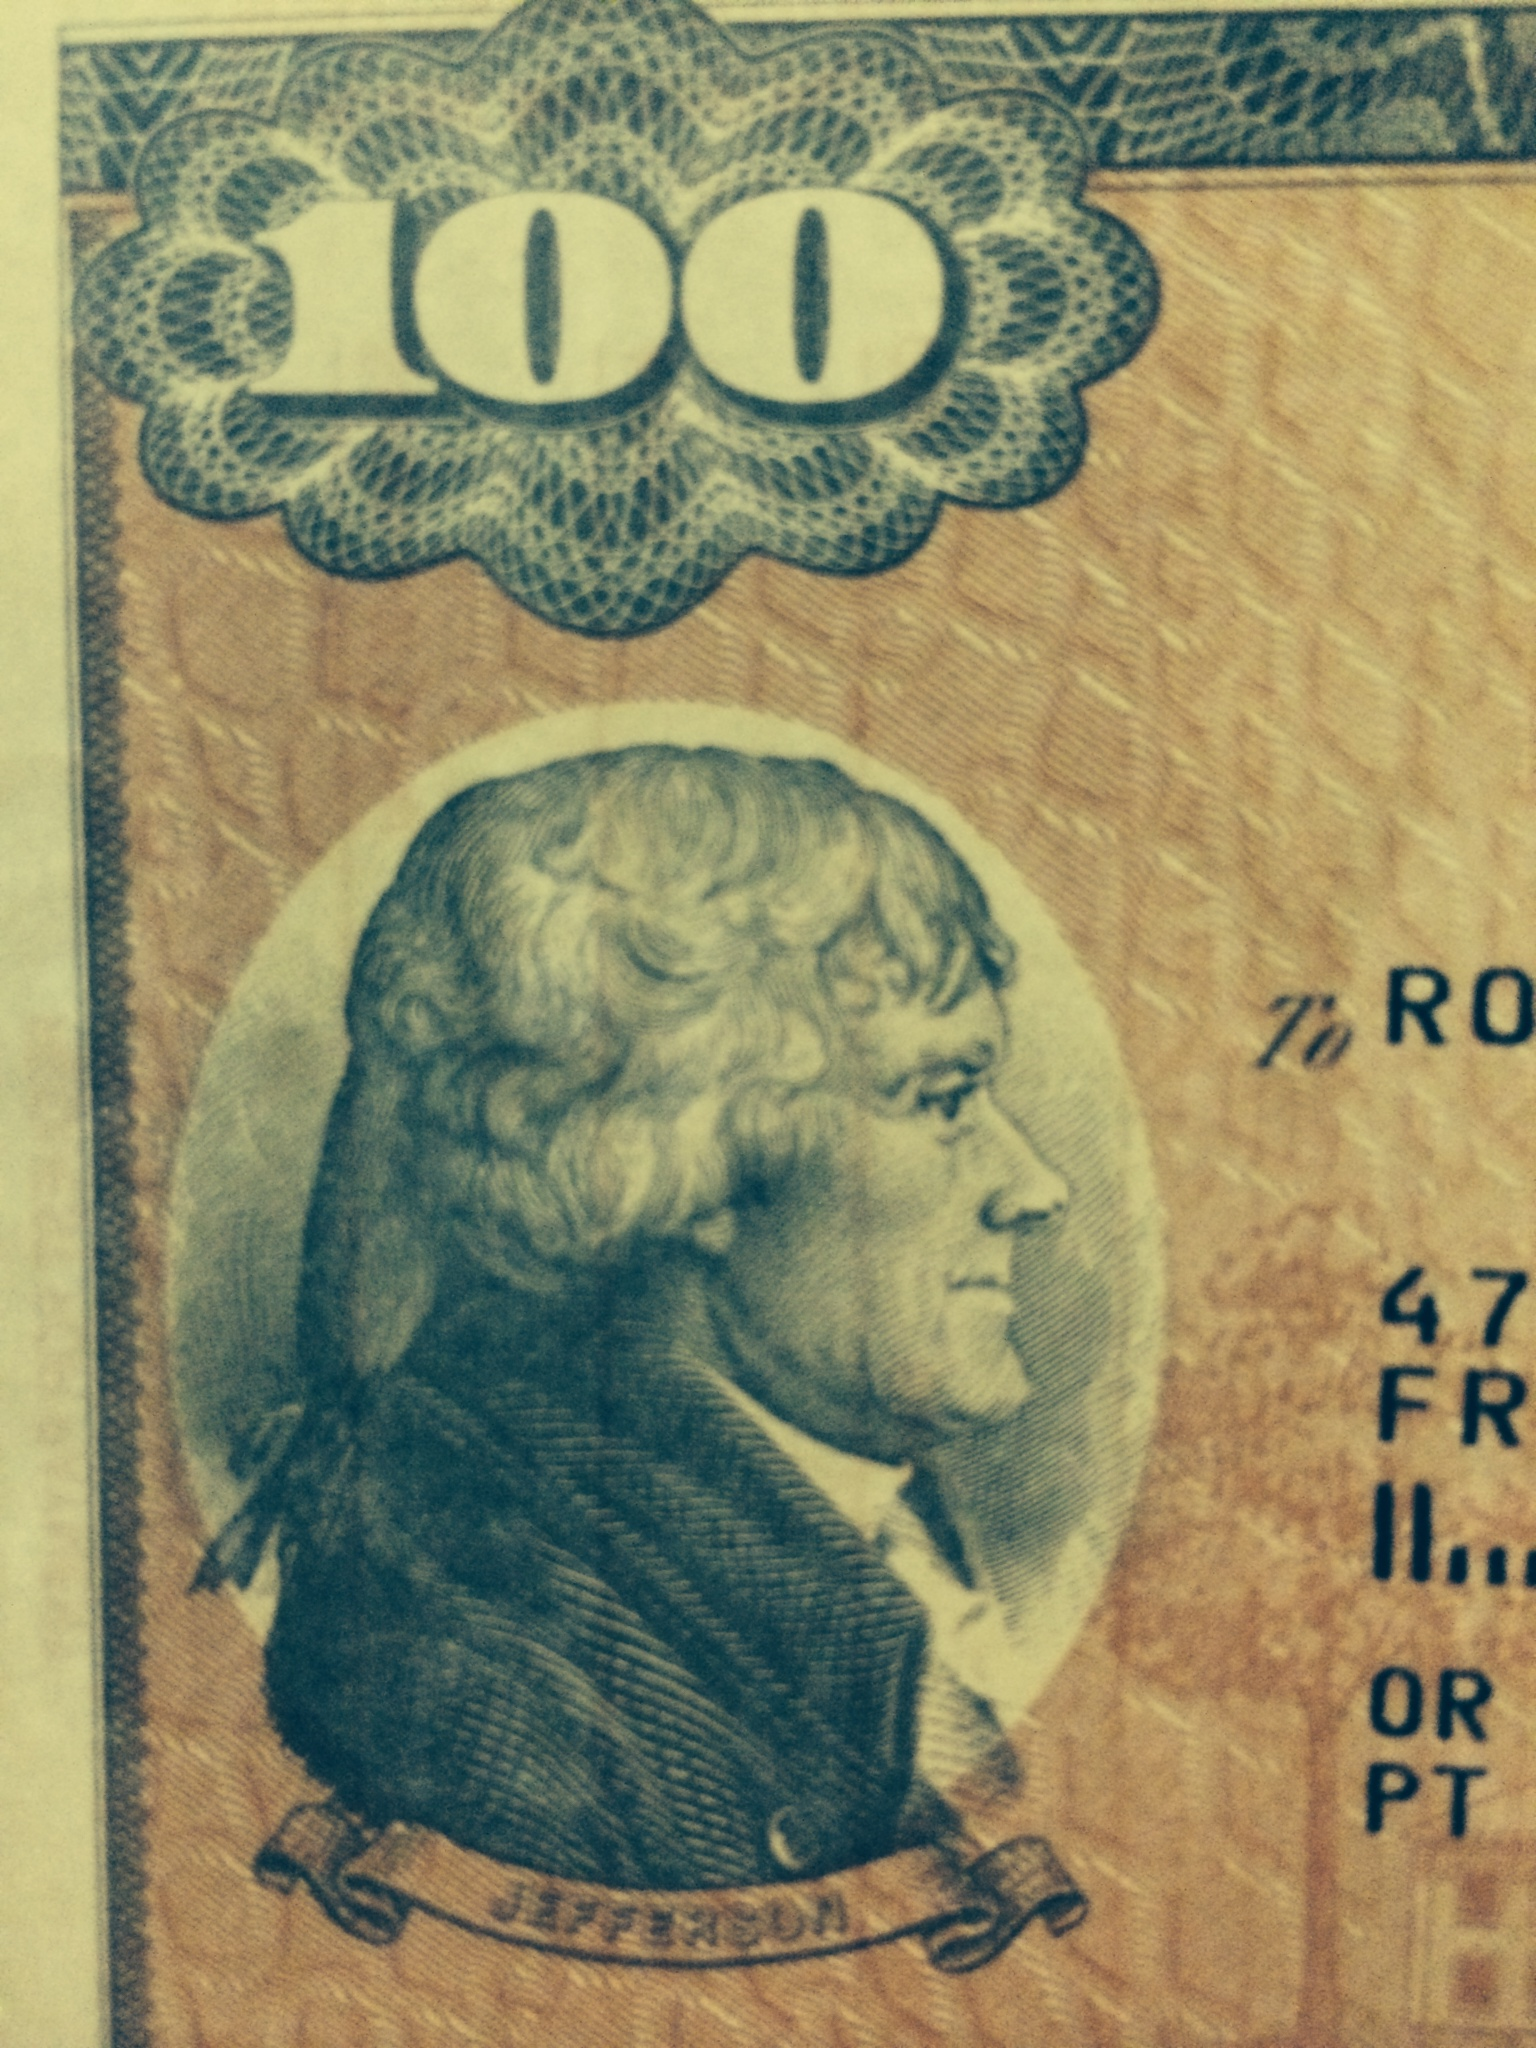 buy paper savings bonds Today, bonds are only available via the treasury's website, treasurydirect there's one exception: you can still get a paper bond at tax time if you send in irs form 8888 to use a portion of your federal tax return to purchase series i savings bonds, the inflation-adjusted cousin of the traditional series e bonds if you want to buy a savings bond.